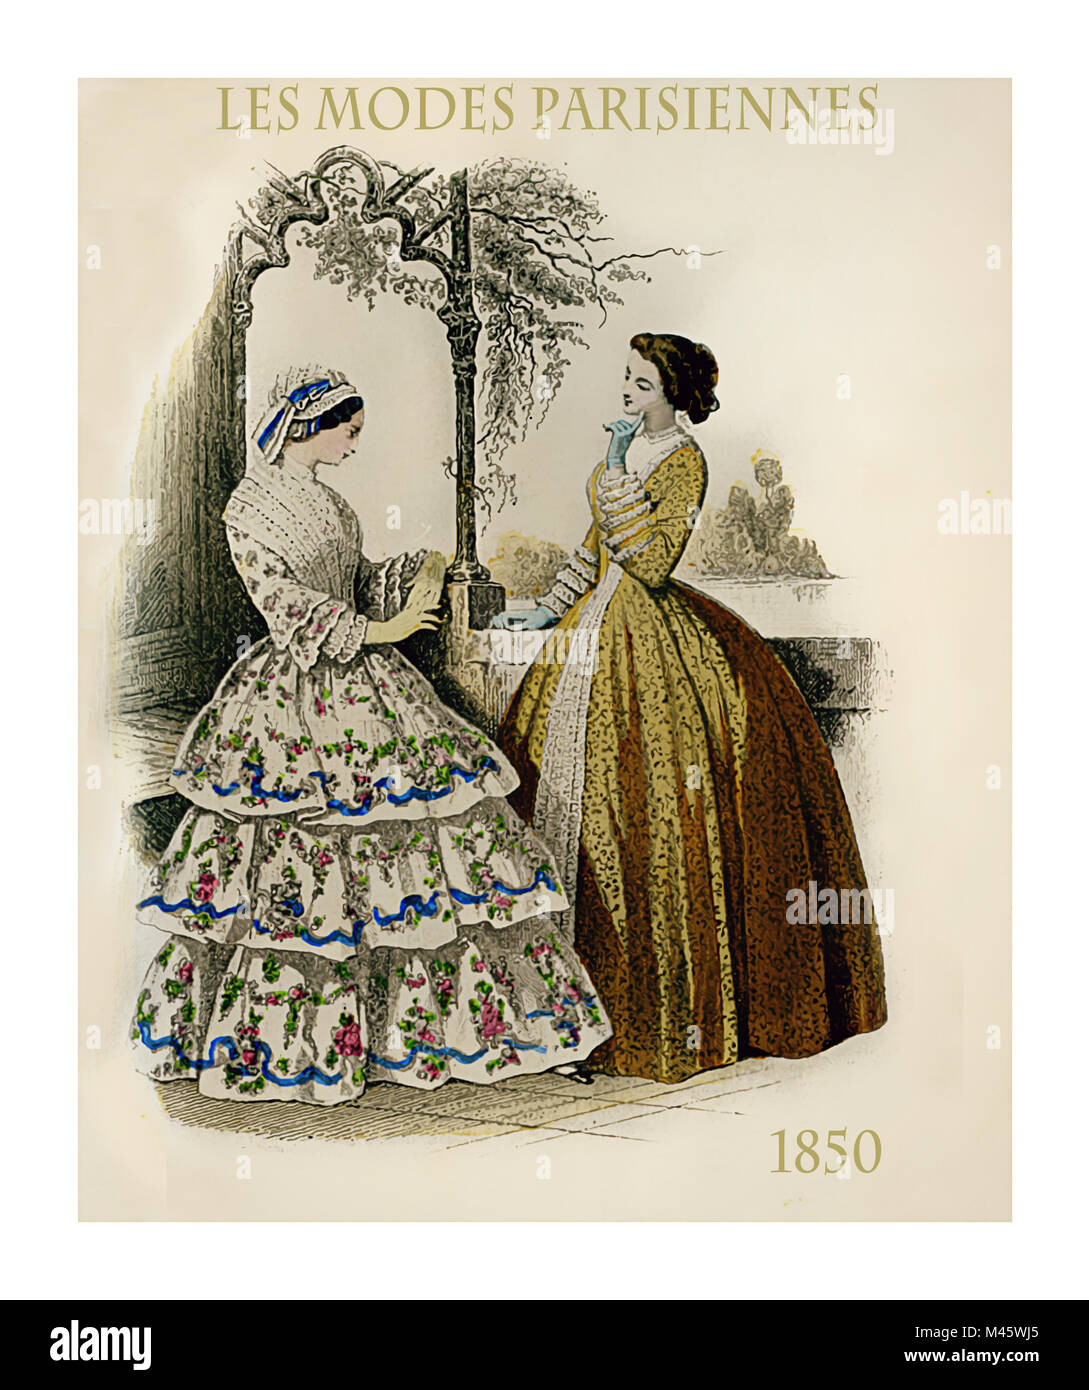 1850 vintage fashion, French magazine Les Modes Parisiennes presents two ladies chatting leisurely outdoors with - Stock Image